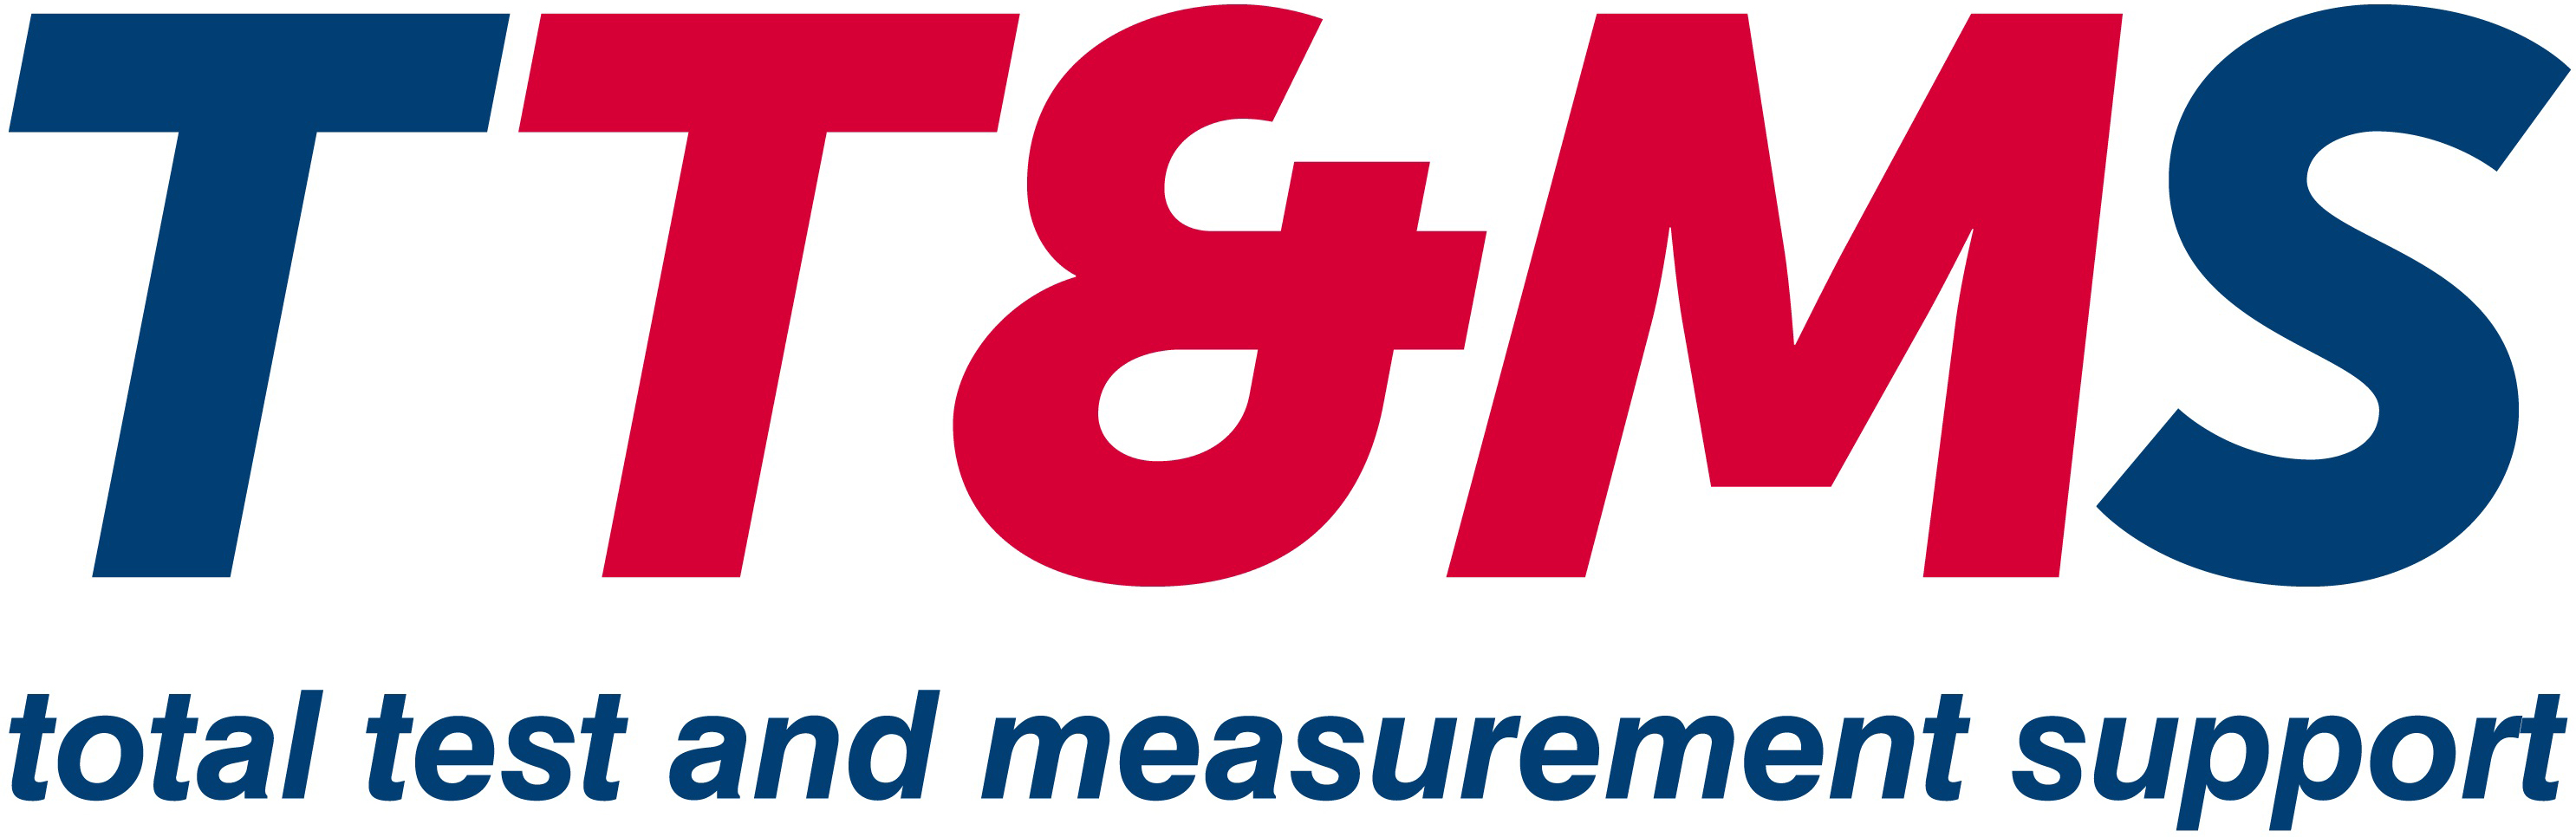 Total Test and Measurement Support Logo